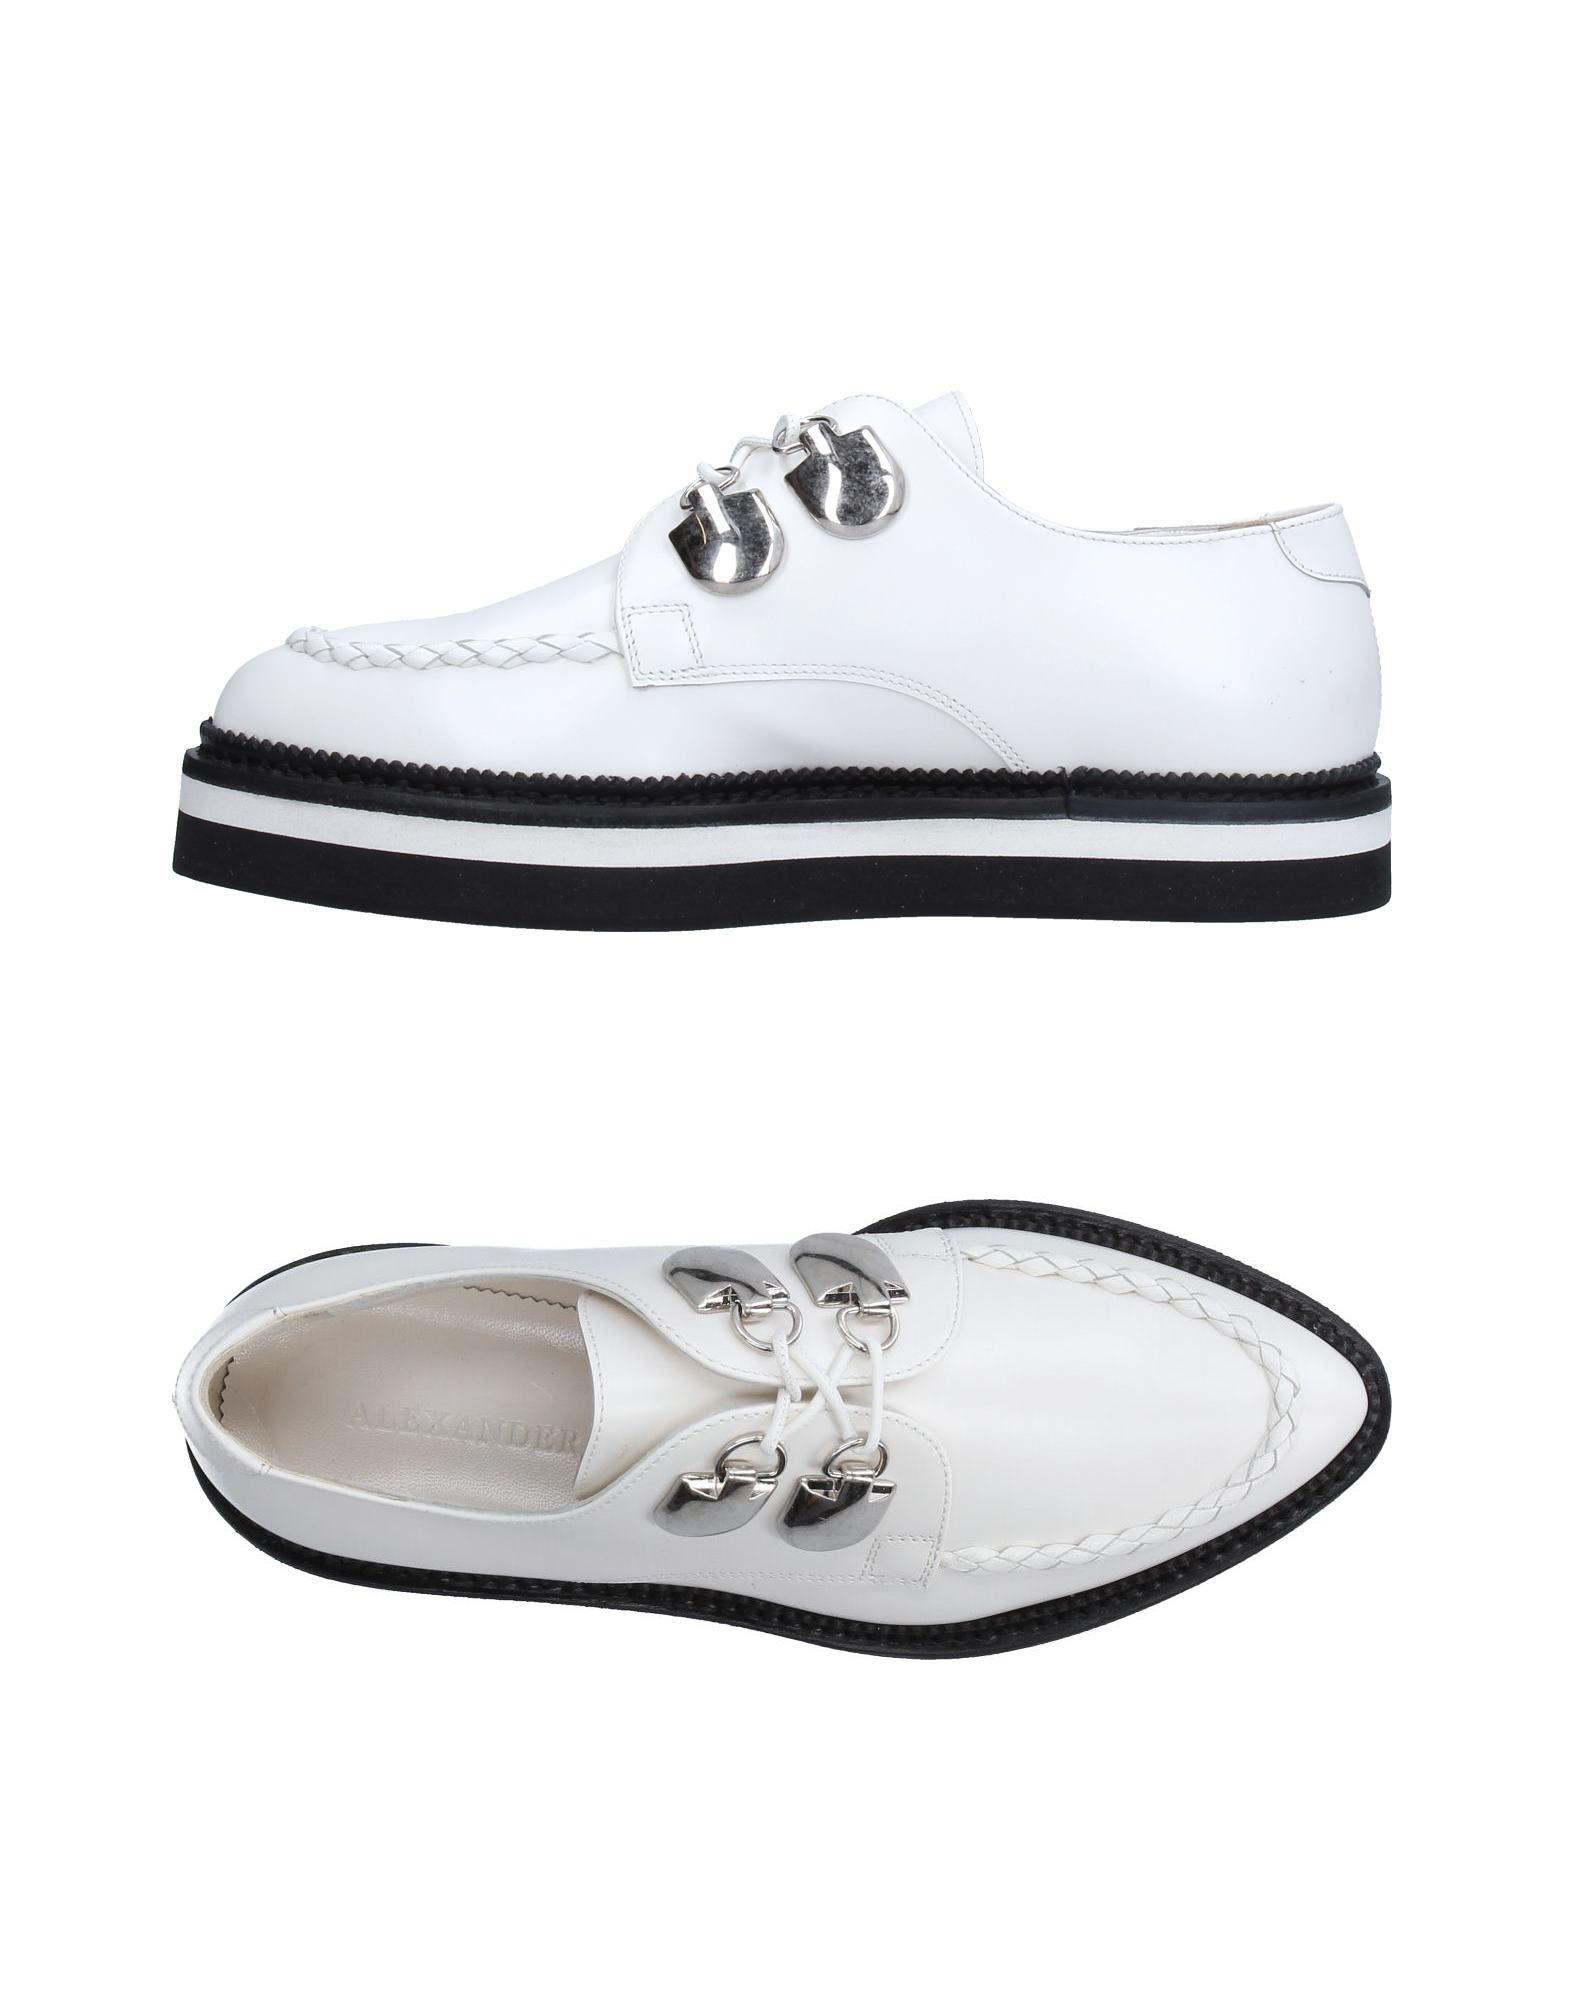 Alexander Mcqueen Lace-up Shoe in White - Lyst